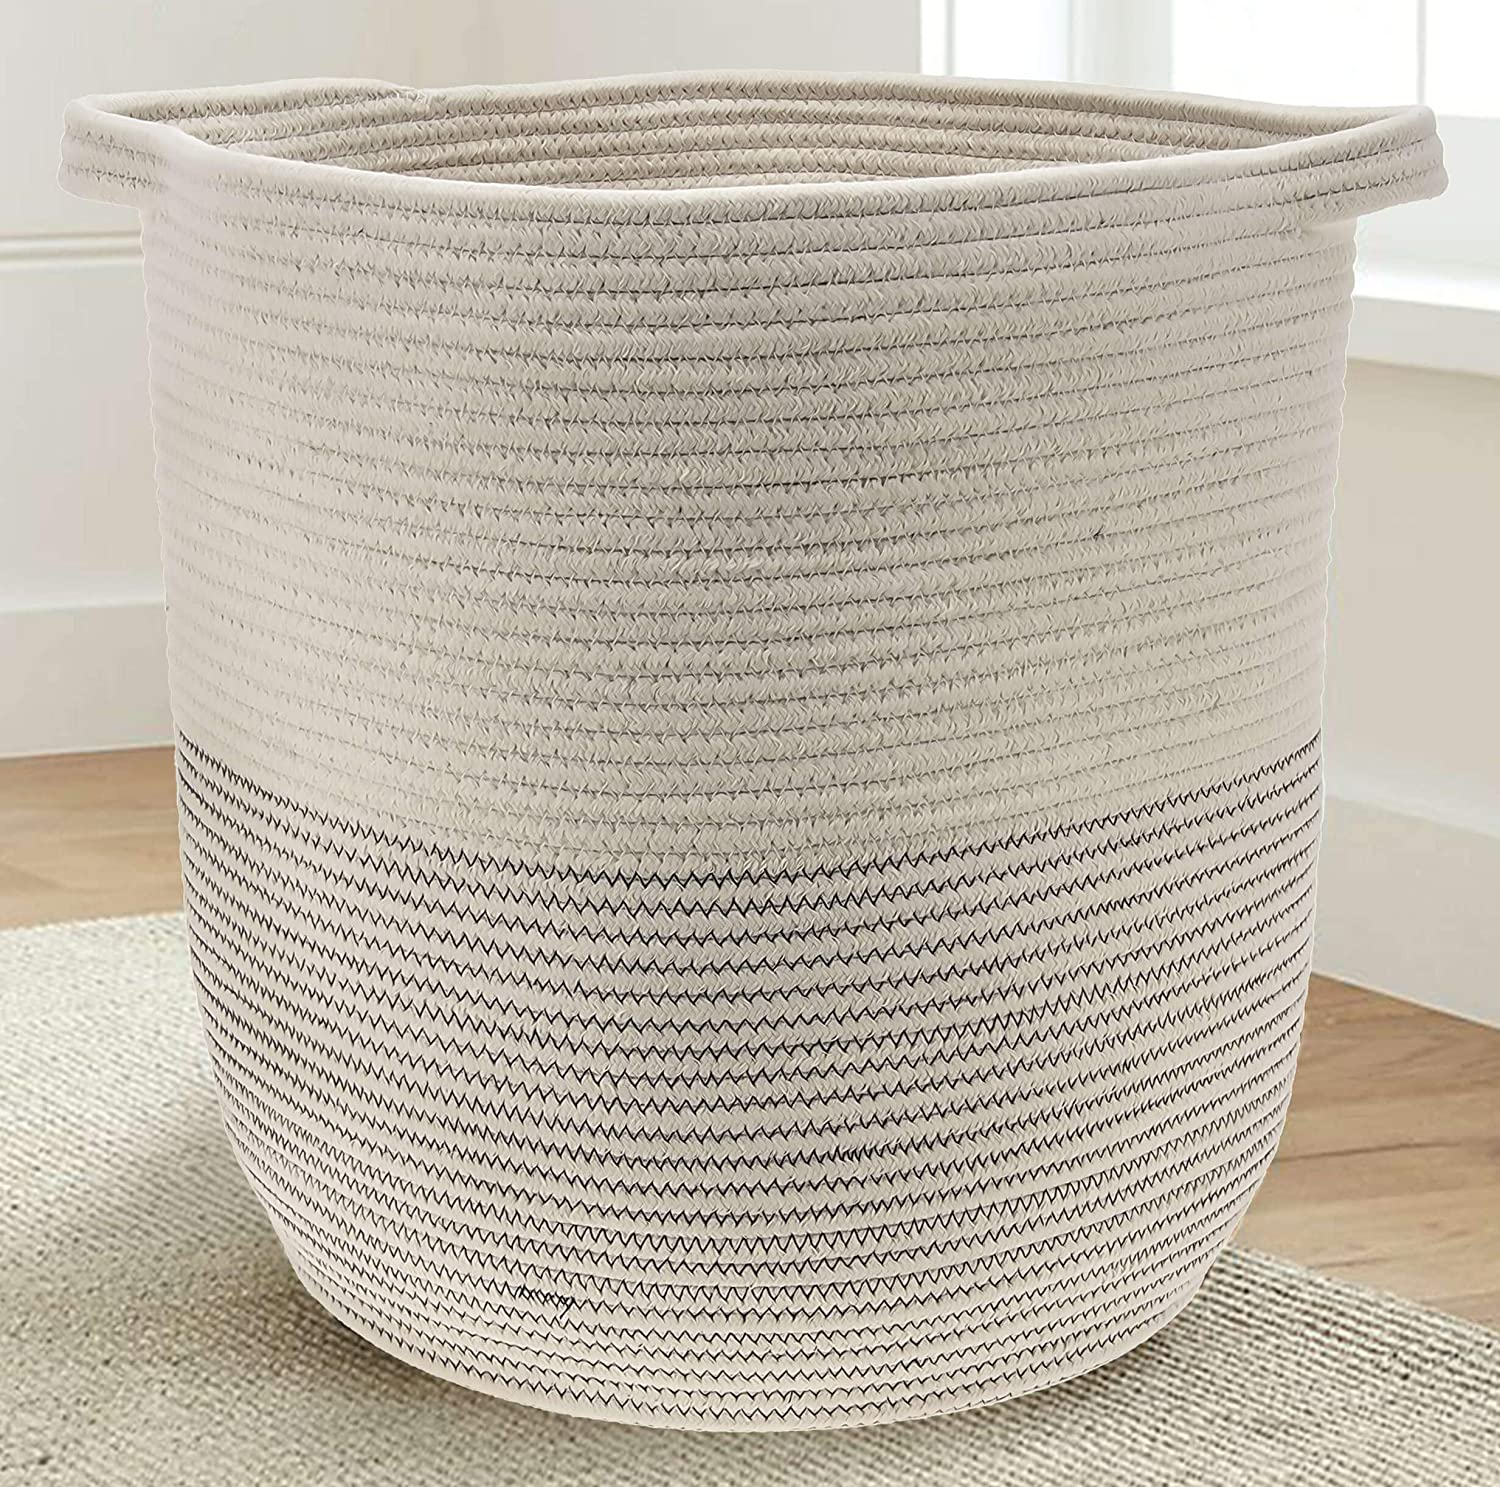 Extra Large Woven Storage Baskets | 18 x 16 Decorative Blanket Basket, Use for Sofa Throws, Pillows, Towels, Toys or Nursery | Cotton Rope Organizer | Coiled Round White Laundry Hamper with Handles GooBloo